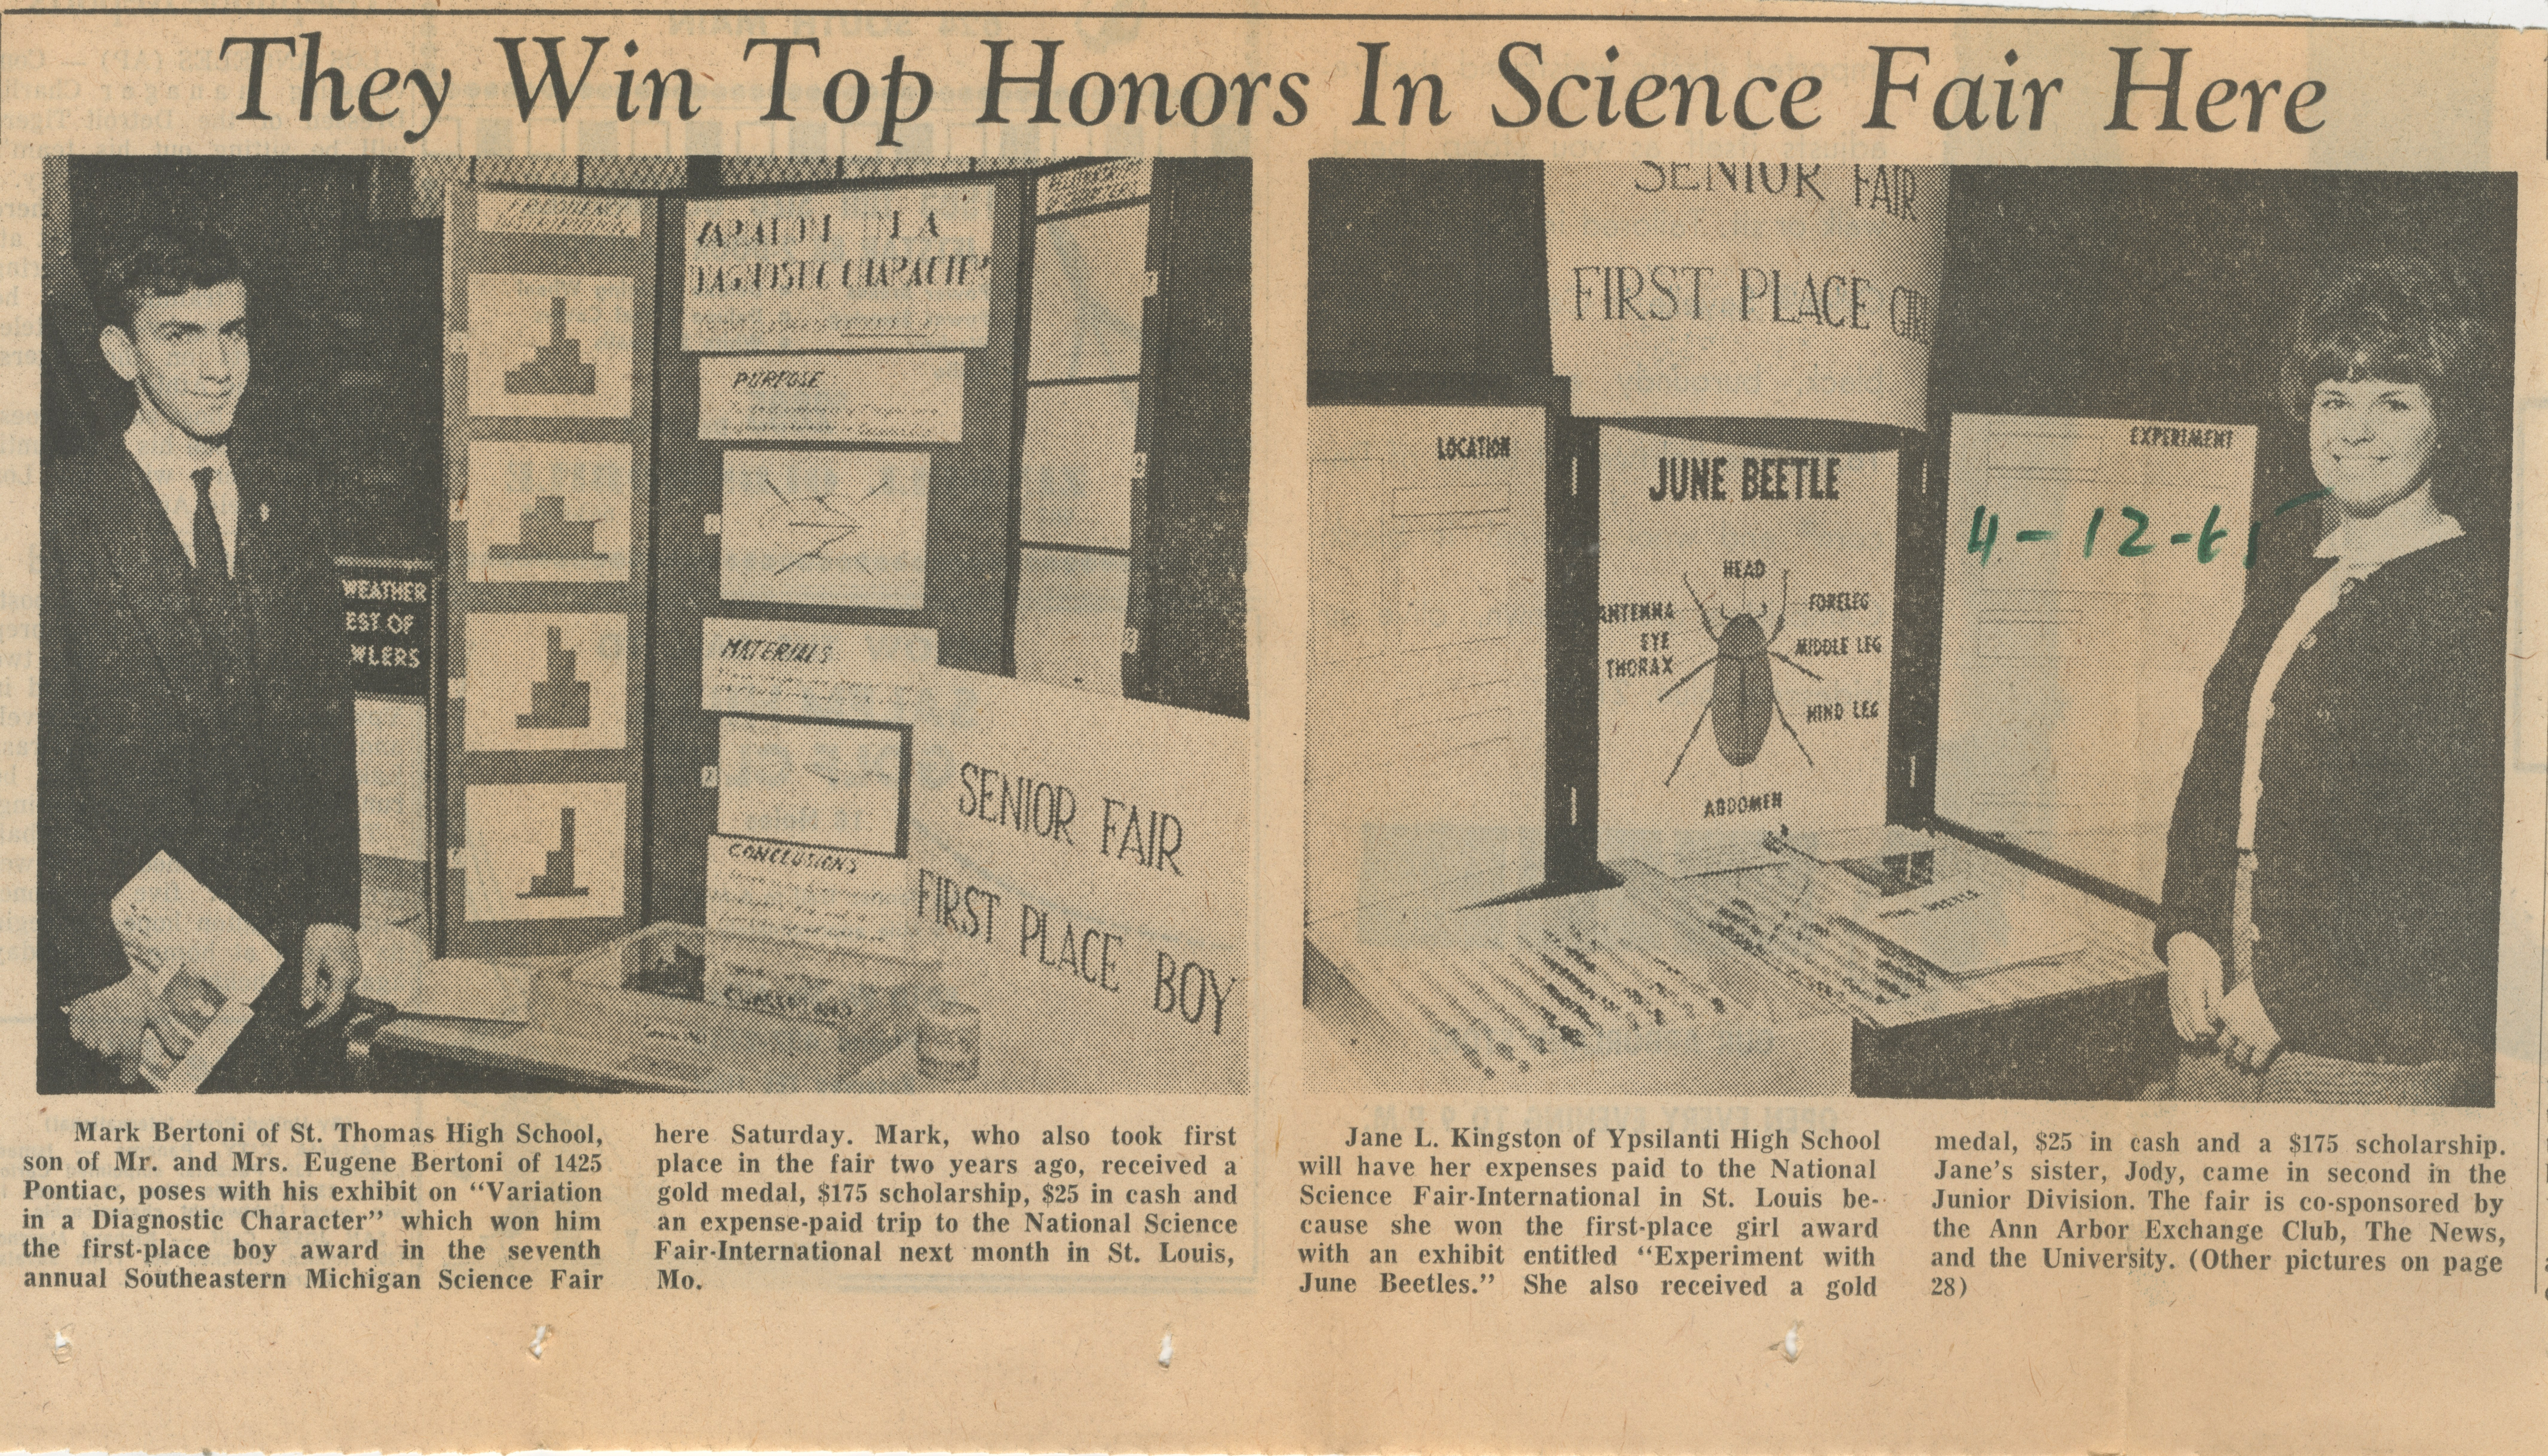 They Win Top Honors In Science Fair Here image